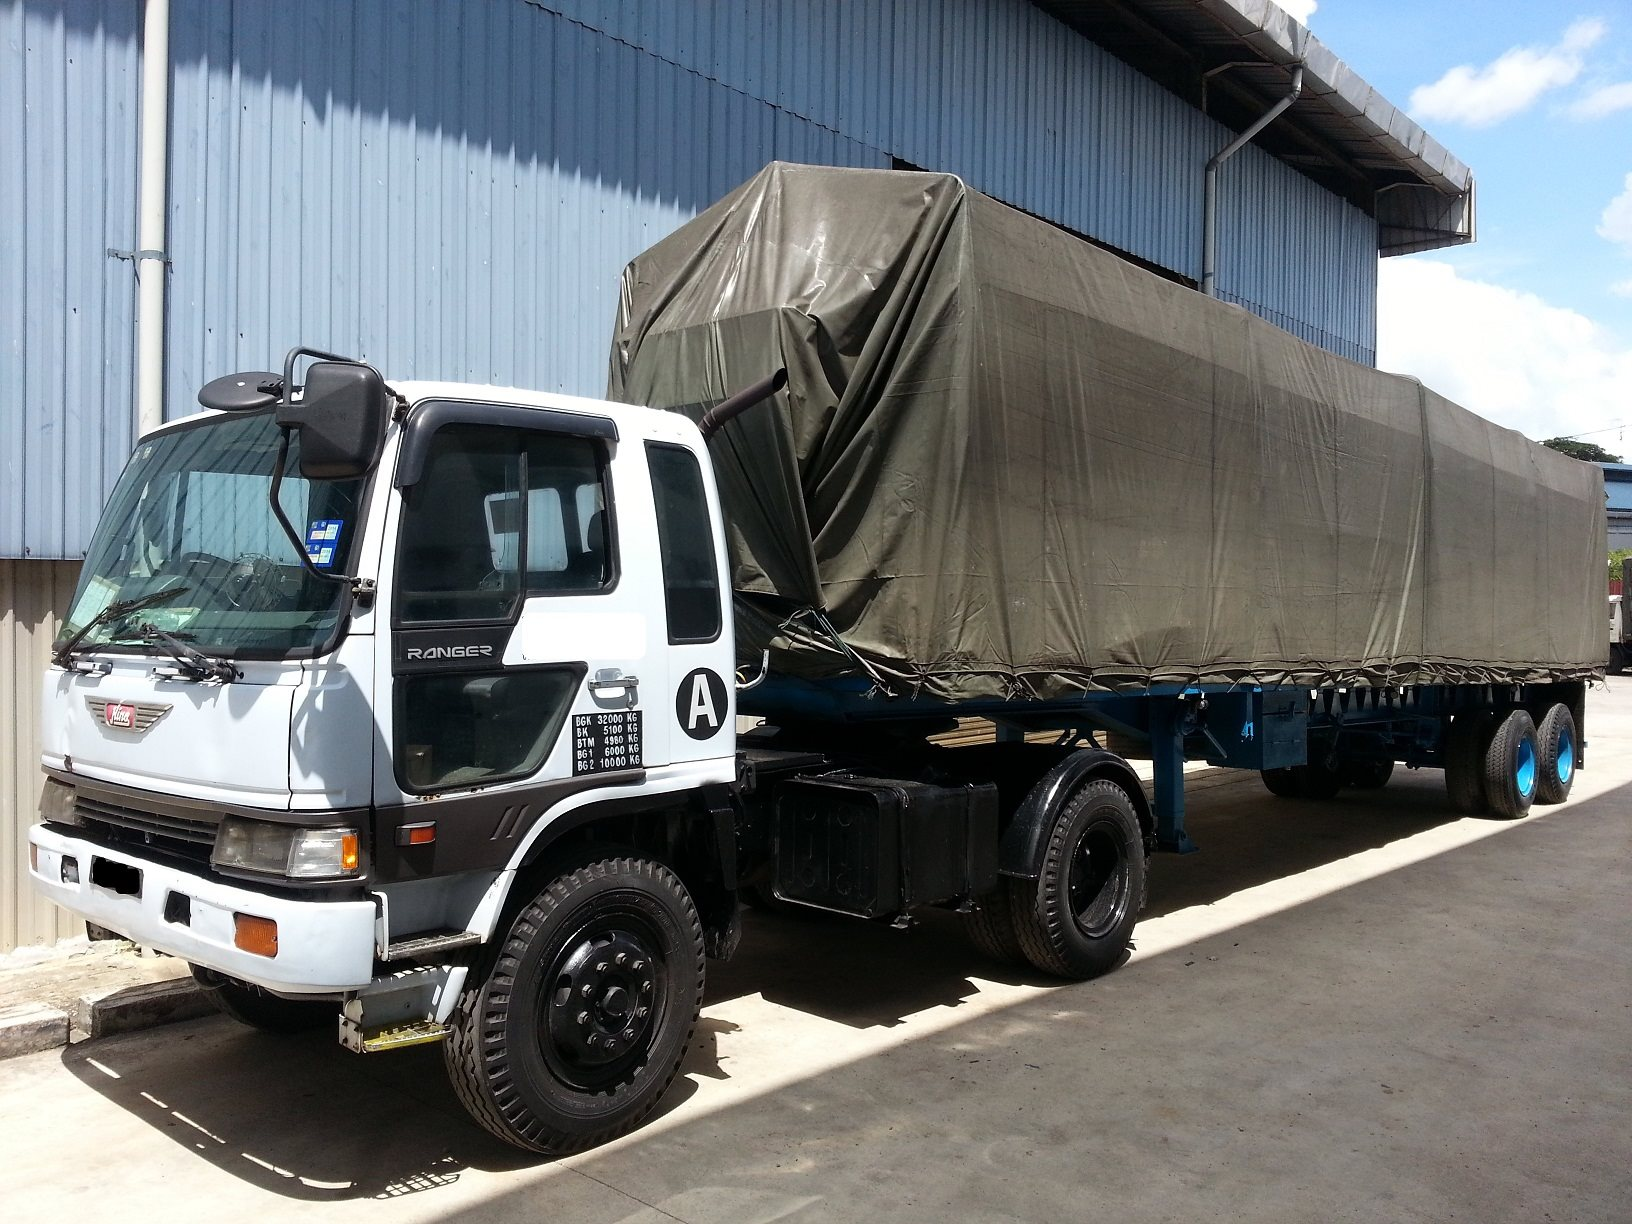 Truck Tarpaulin/Covers - Protect your cargo with our UV and tear resistant heavy duty truck tarpaulin covers.